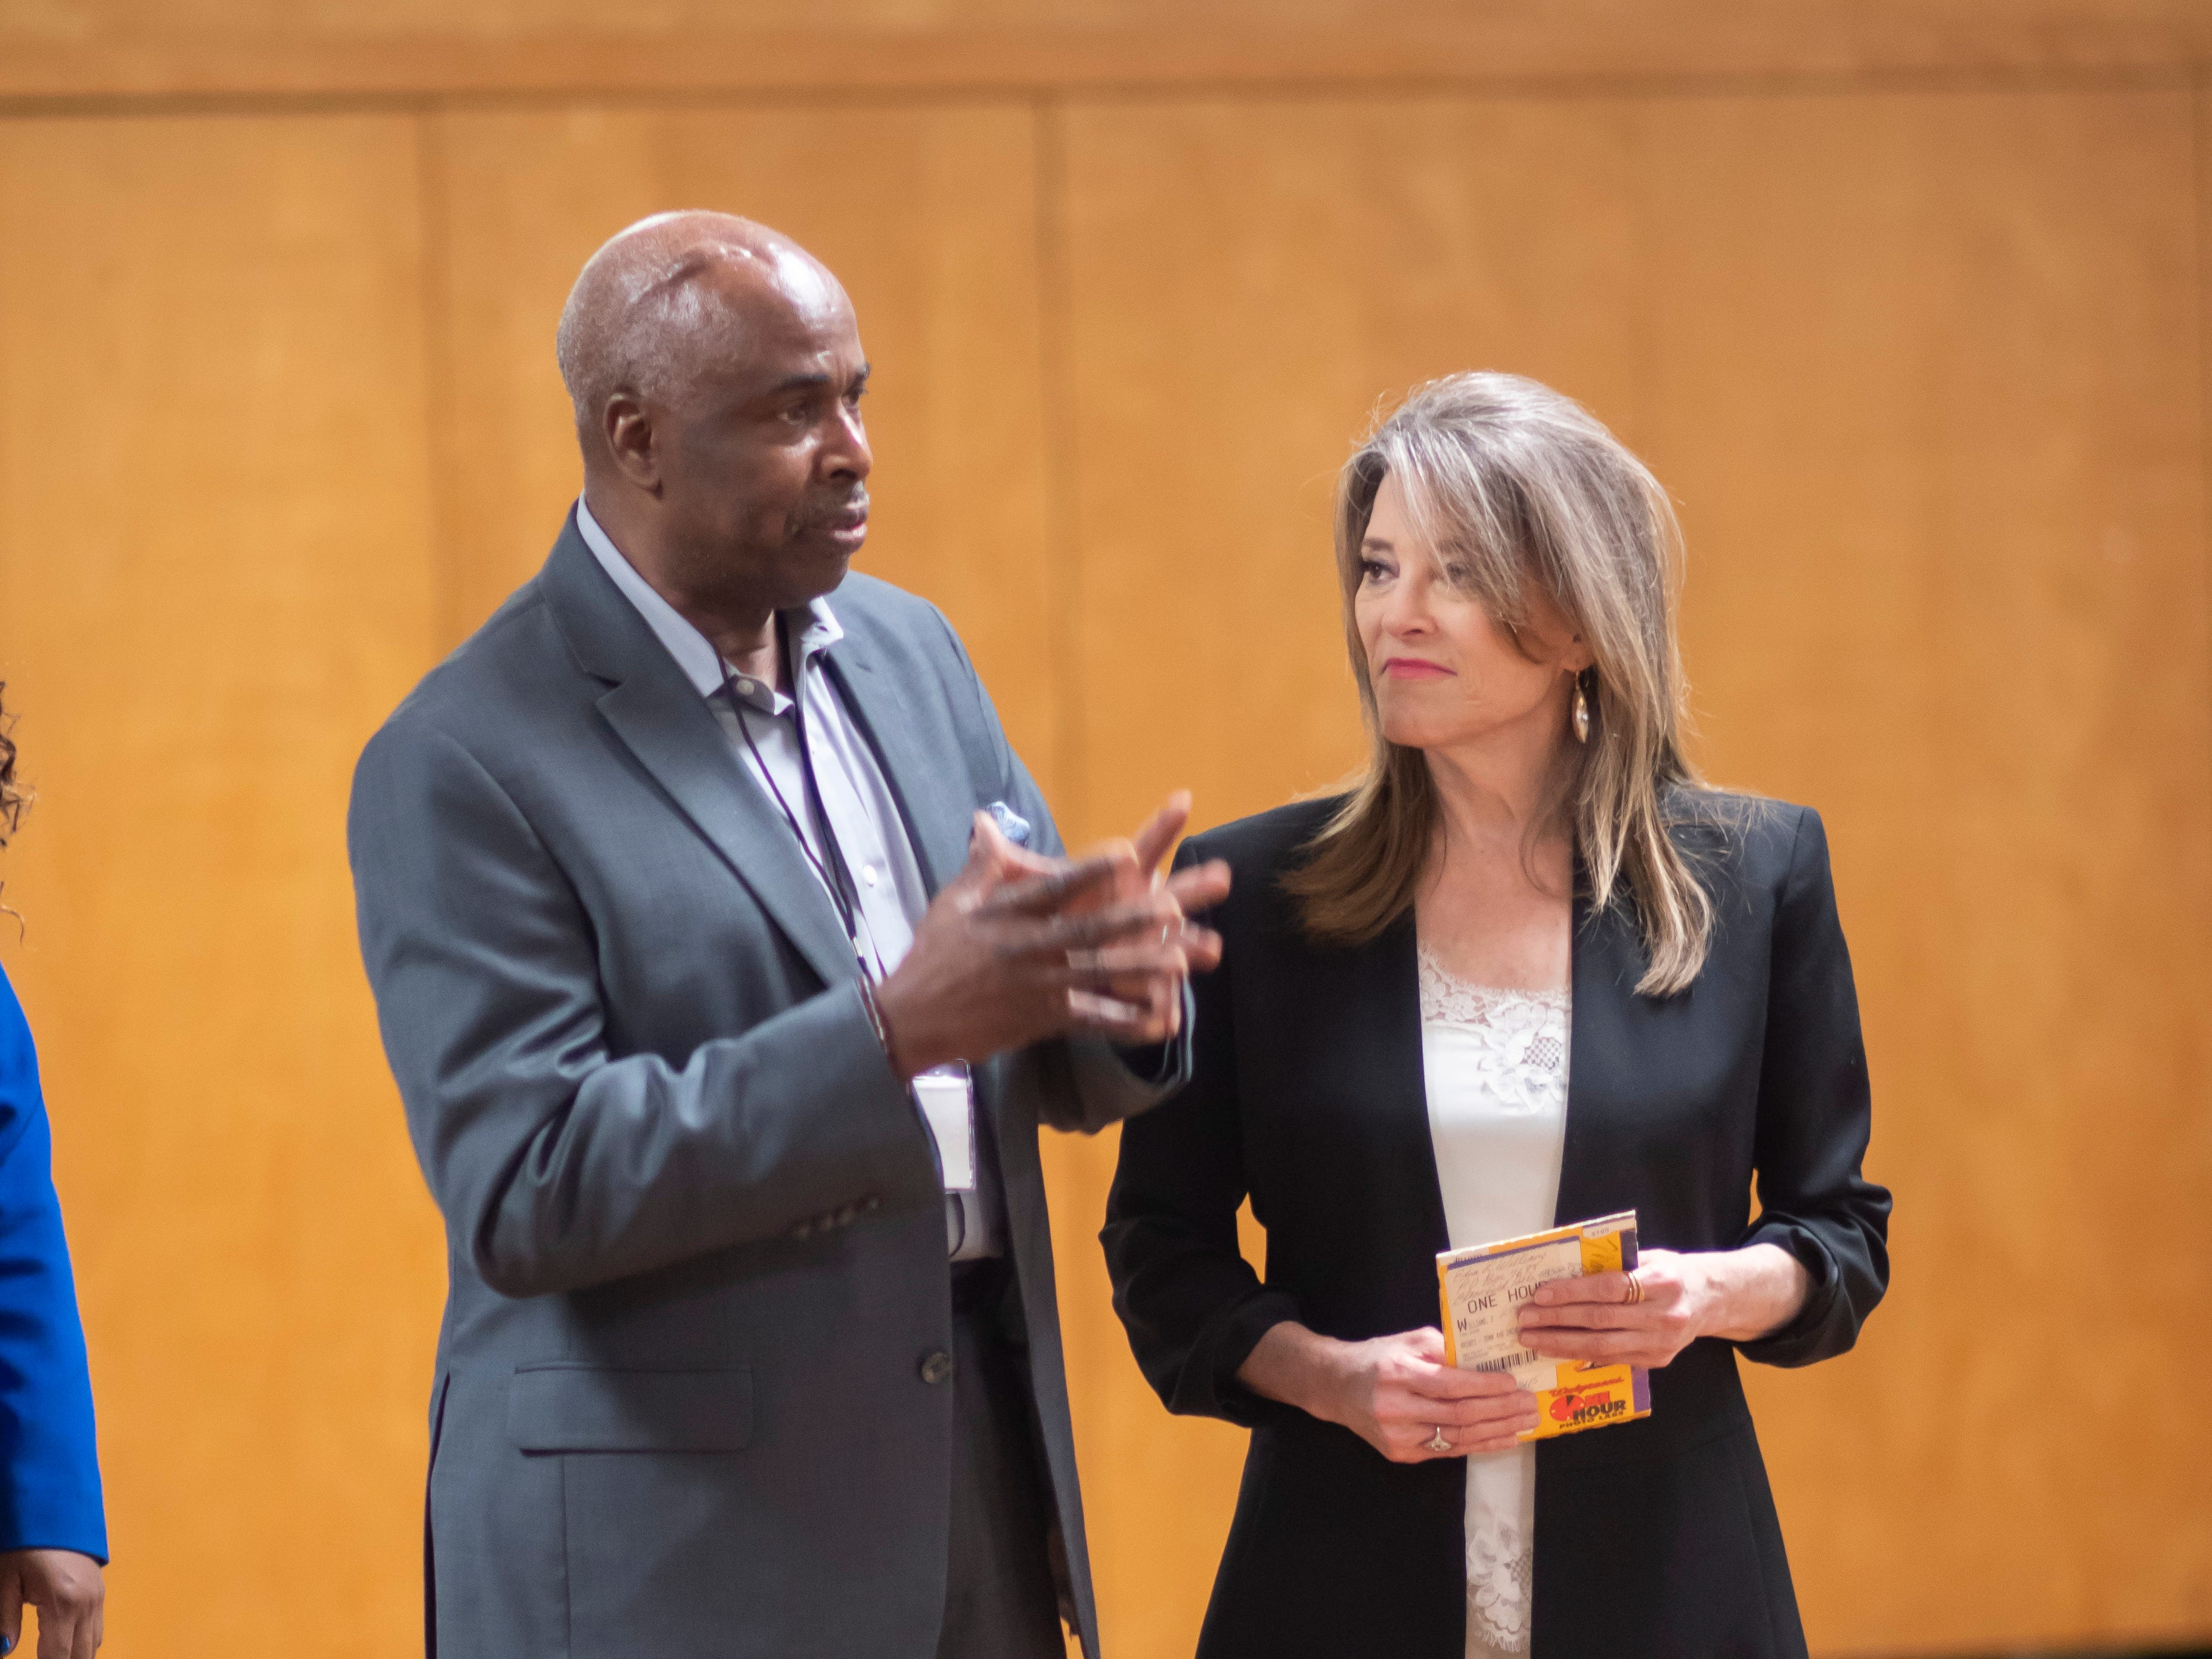 Pastor Gregory Guice, left, speaks about author and Presidential candidate Marianne Williamson during a VIP reception before a town hall at the Detroit Unity Temple.